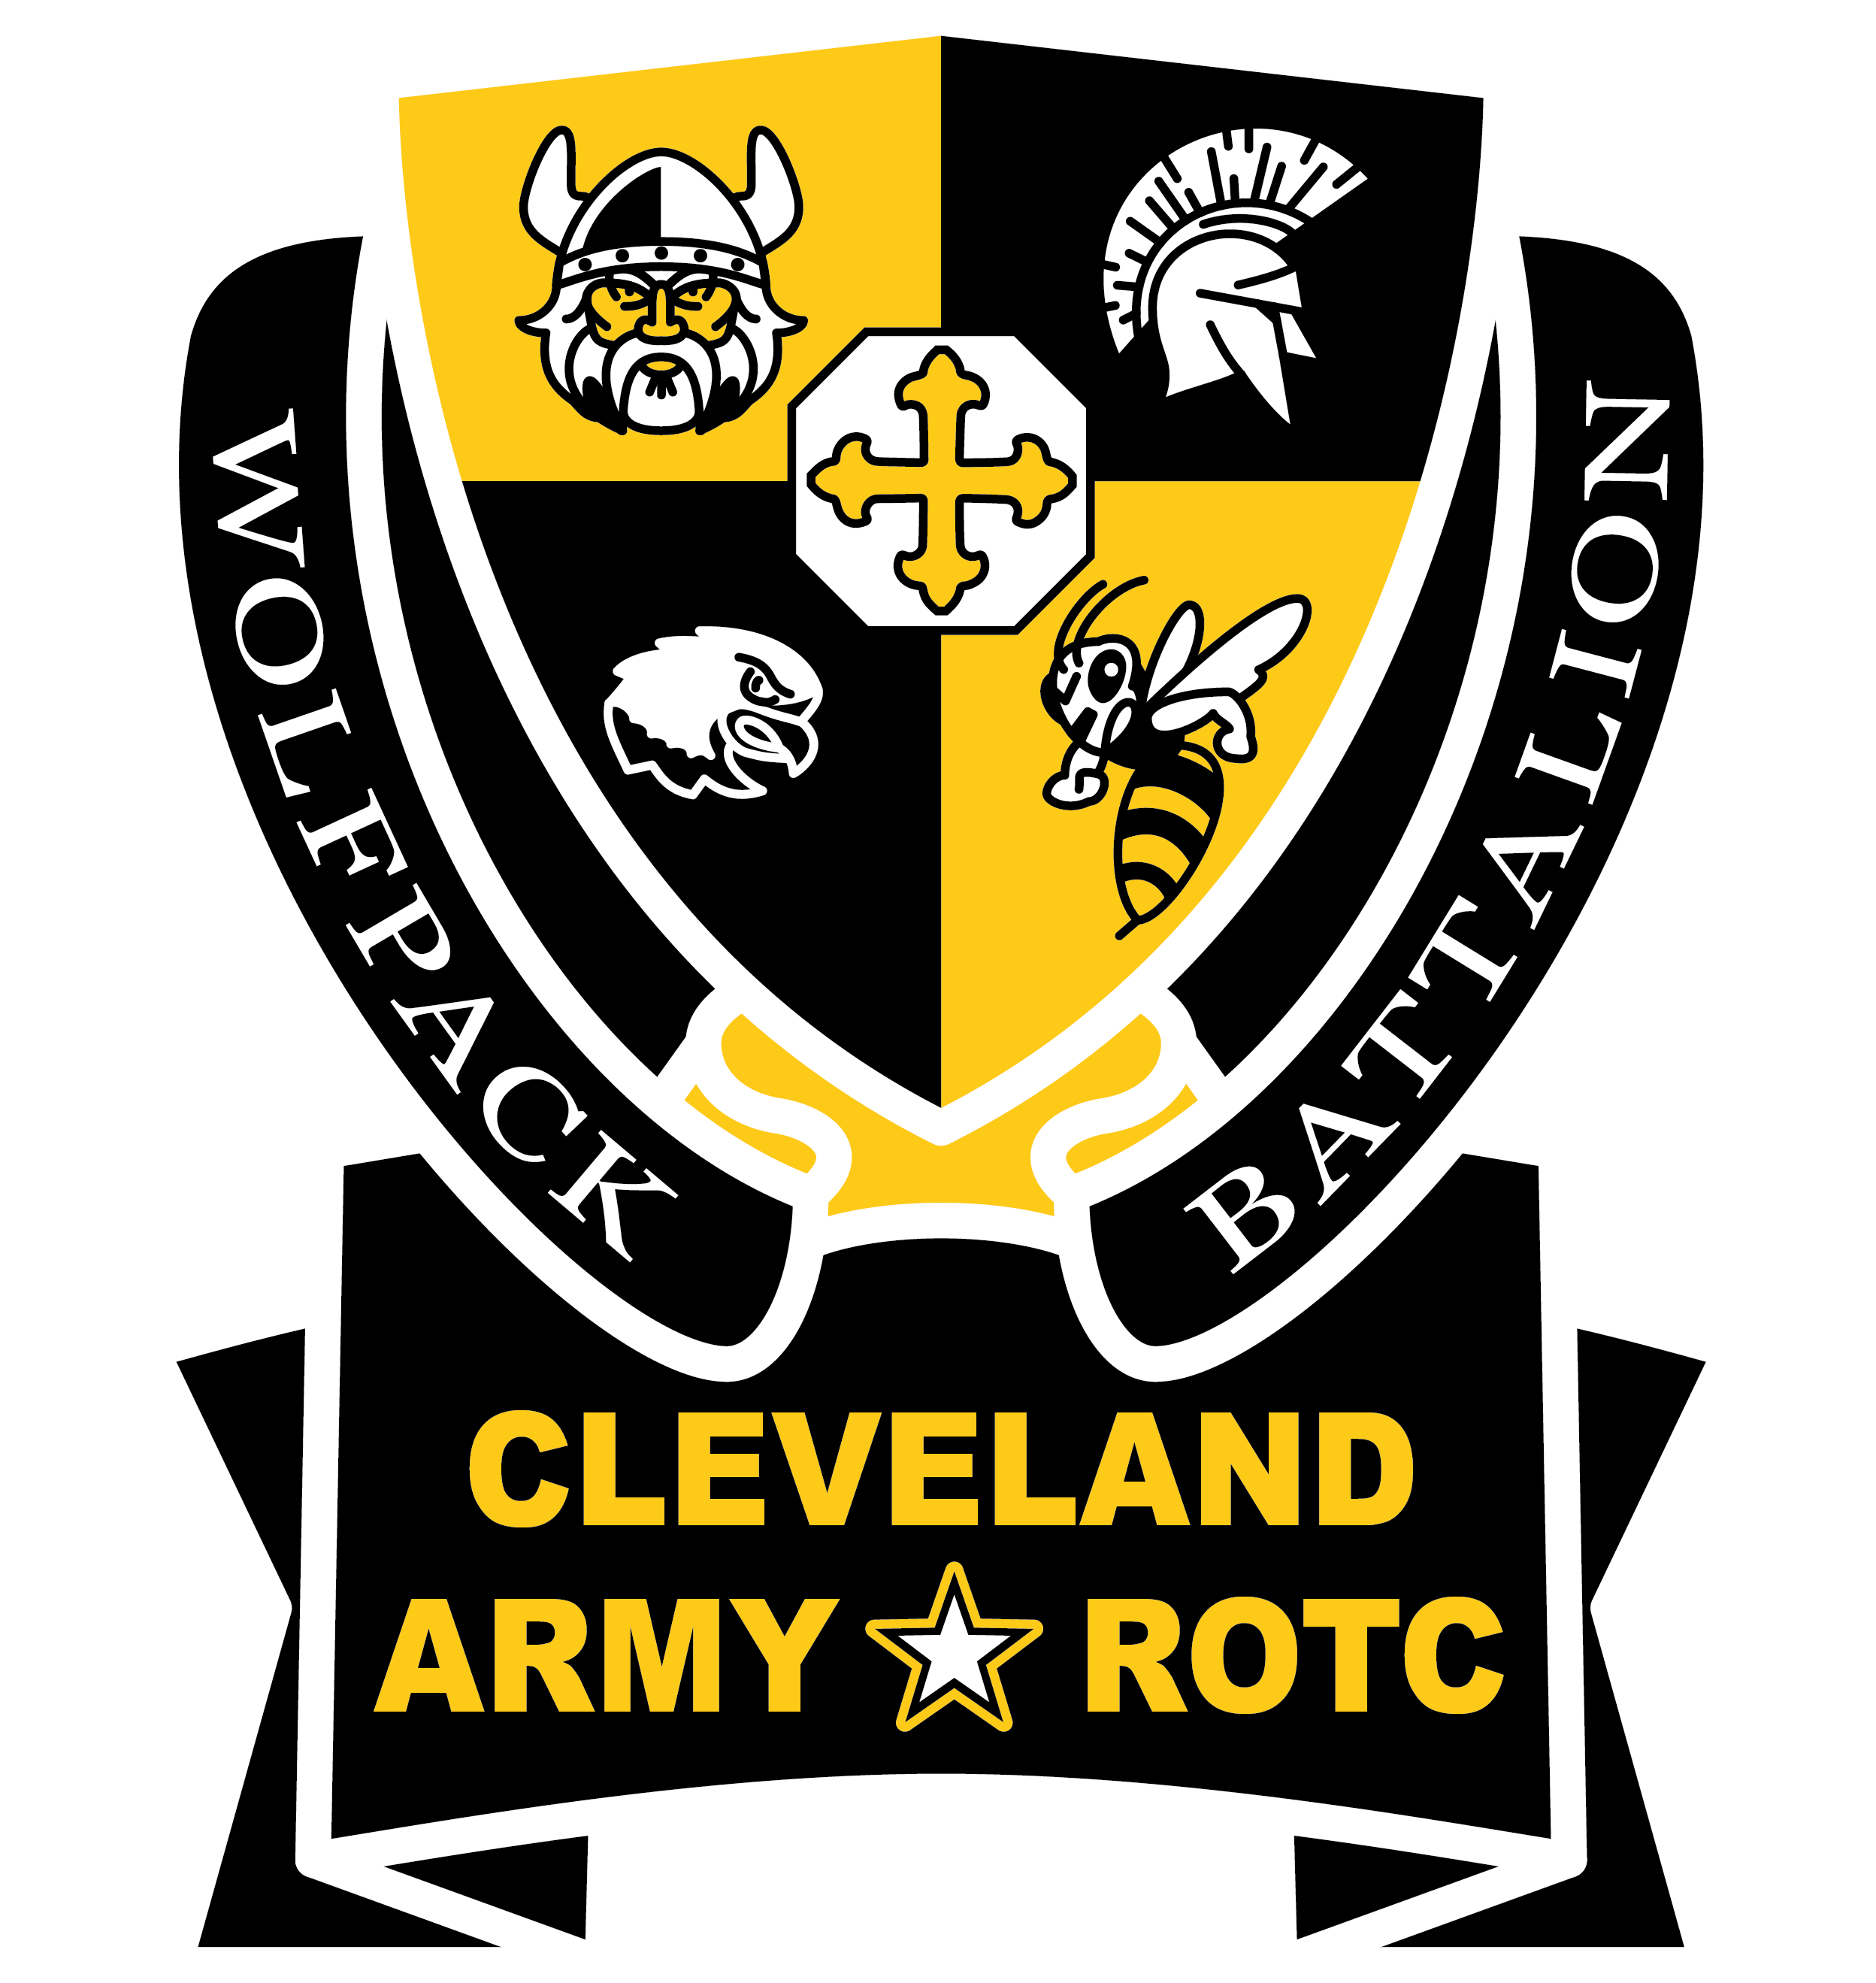 Cleveland's Army ROTC